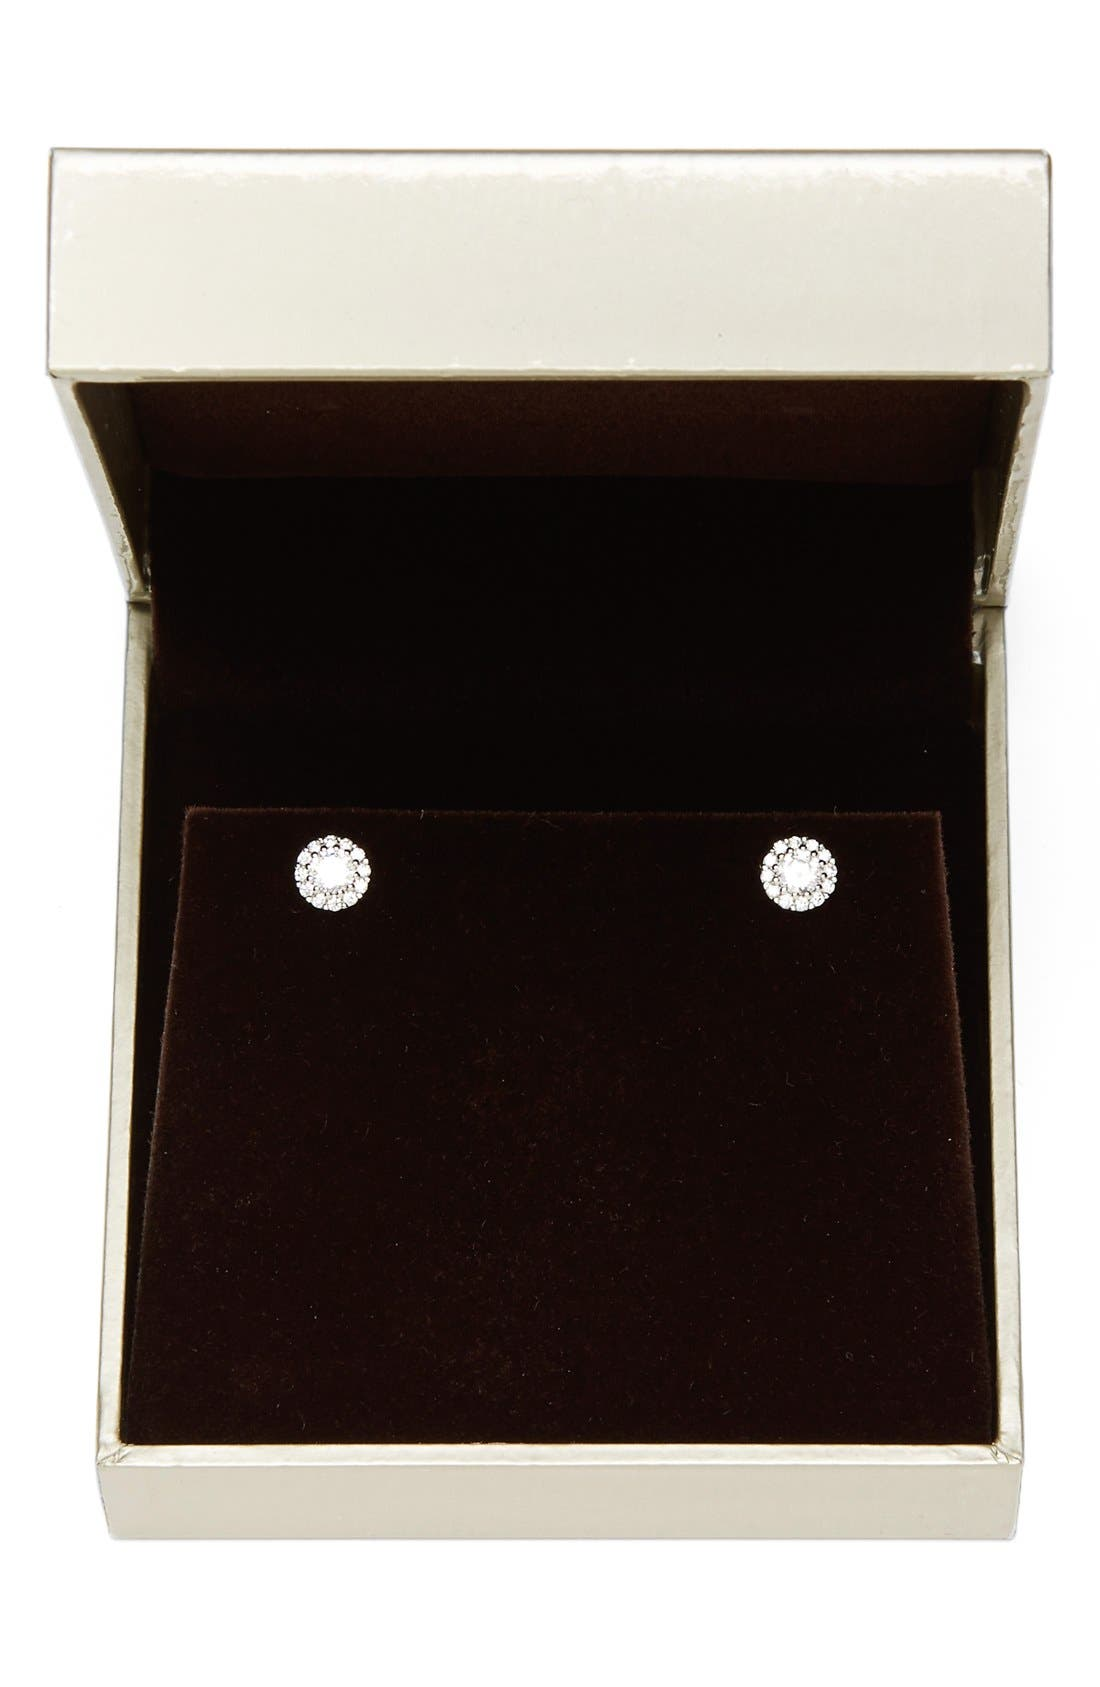 Precious Metal Plated Cubic Zirconia Stud Earrings,                             Alternate thumbnail 2, color,                             PLATINUM